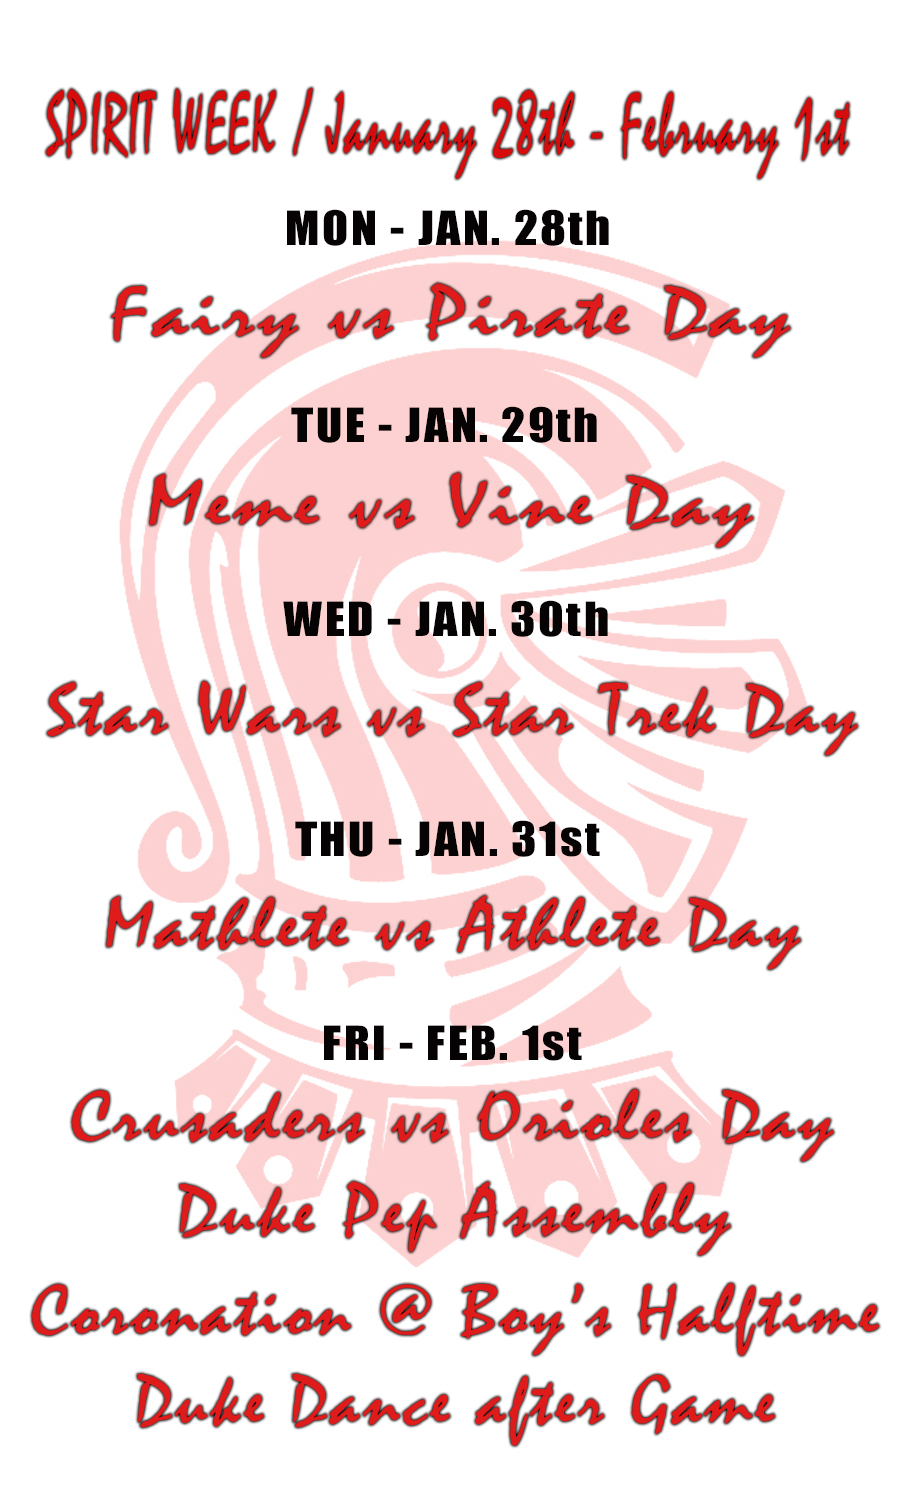 Daily Themes at WHS - Spirit Week Spring 2019